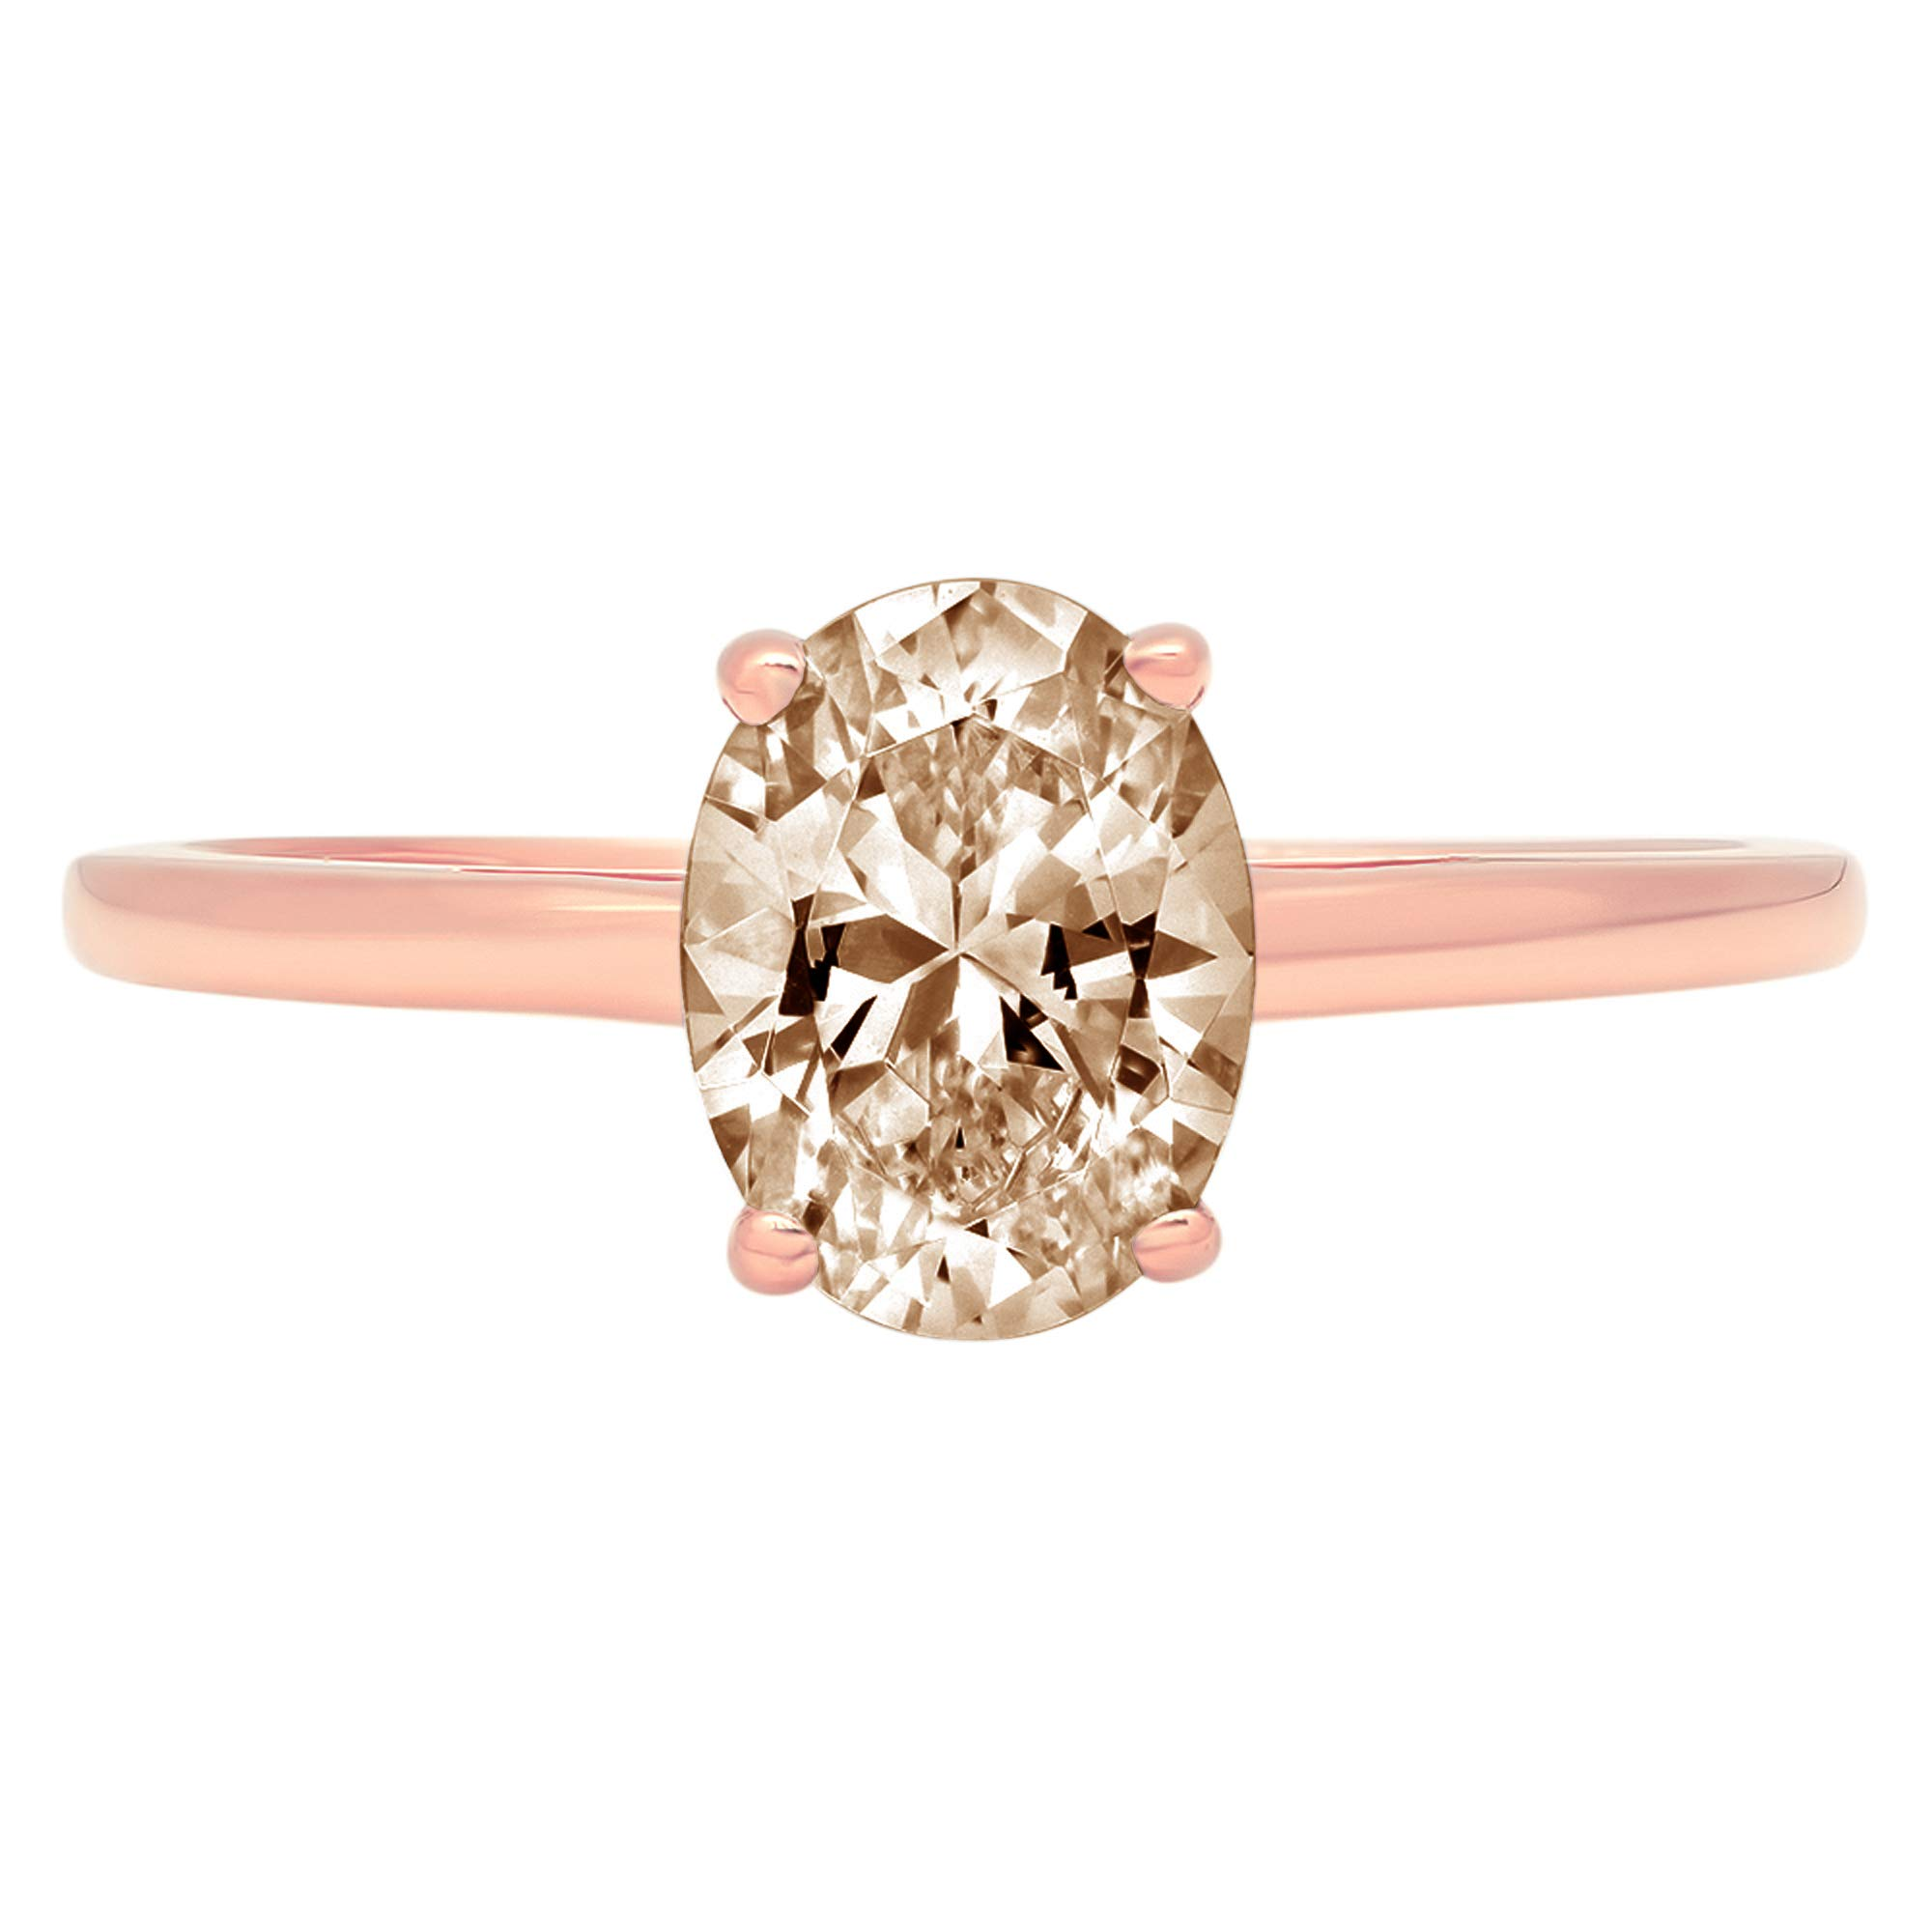 1.0 ct Brilliant Oval Cut Solitaire Brown Champagne Simulated Diamond CZ Ideal VVS1 D 4-Prong Engagement Wedding Bridal Promise Anniversary Ring Solid Real 14k Rose Gold for Women